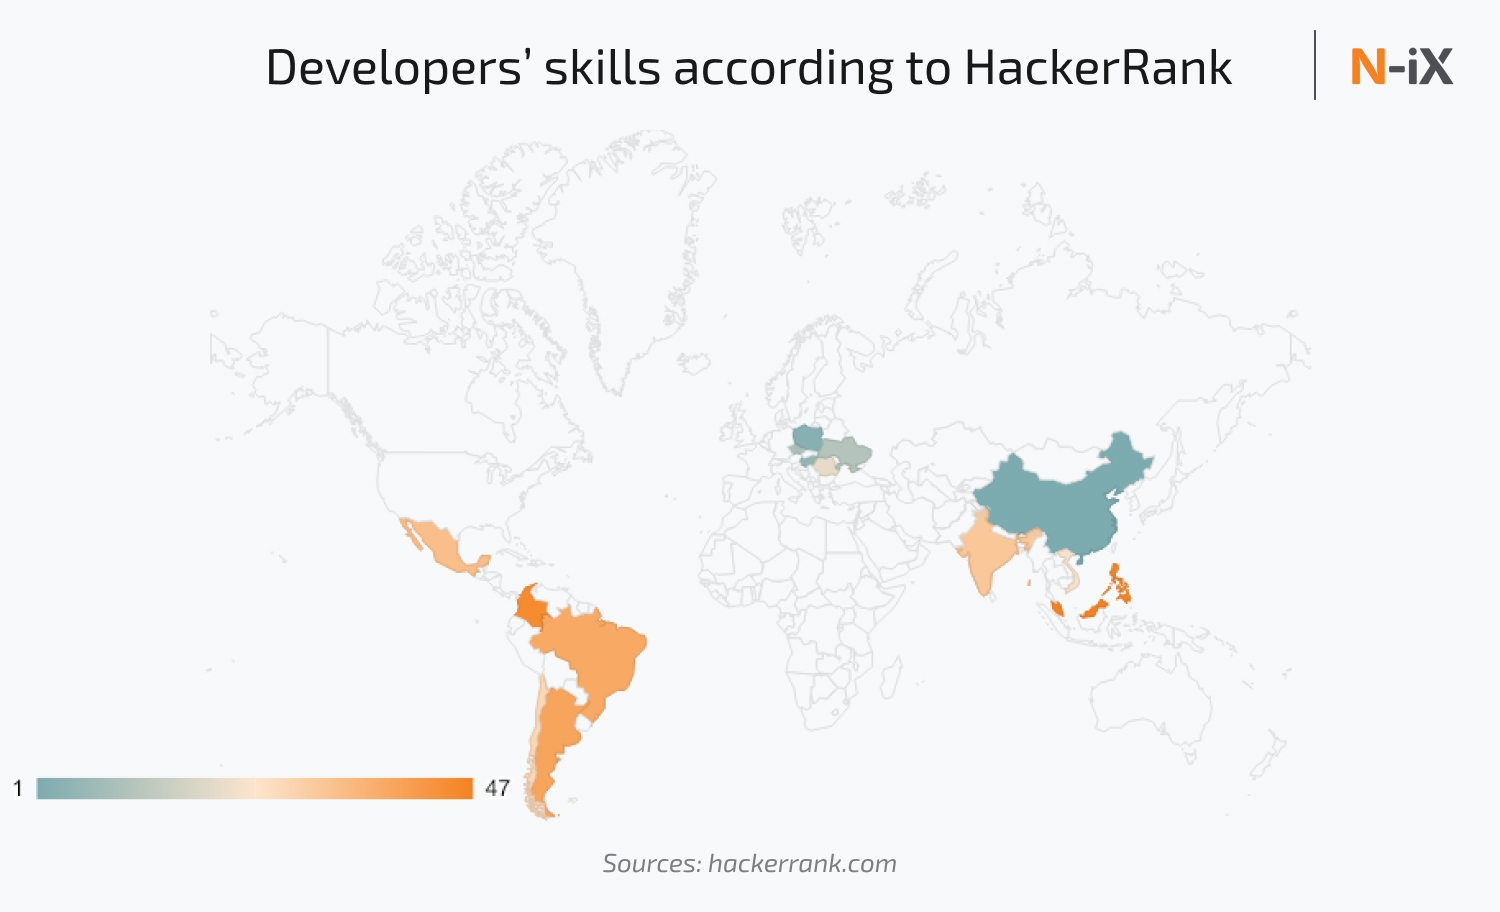 Where to outsource: tech qualifications according to HackerRank